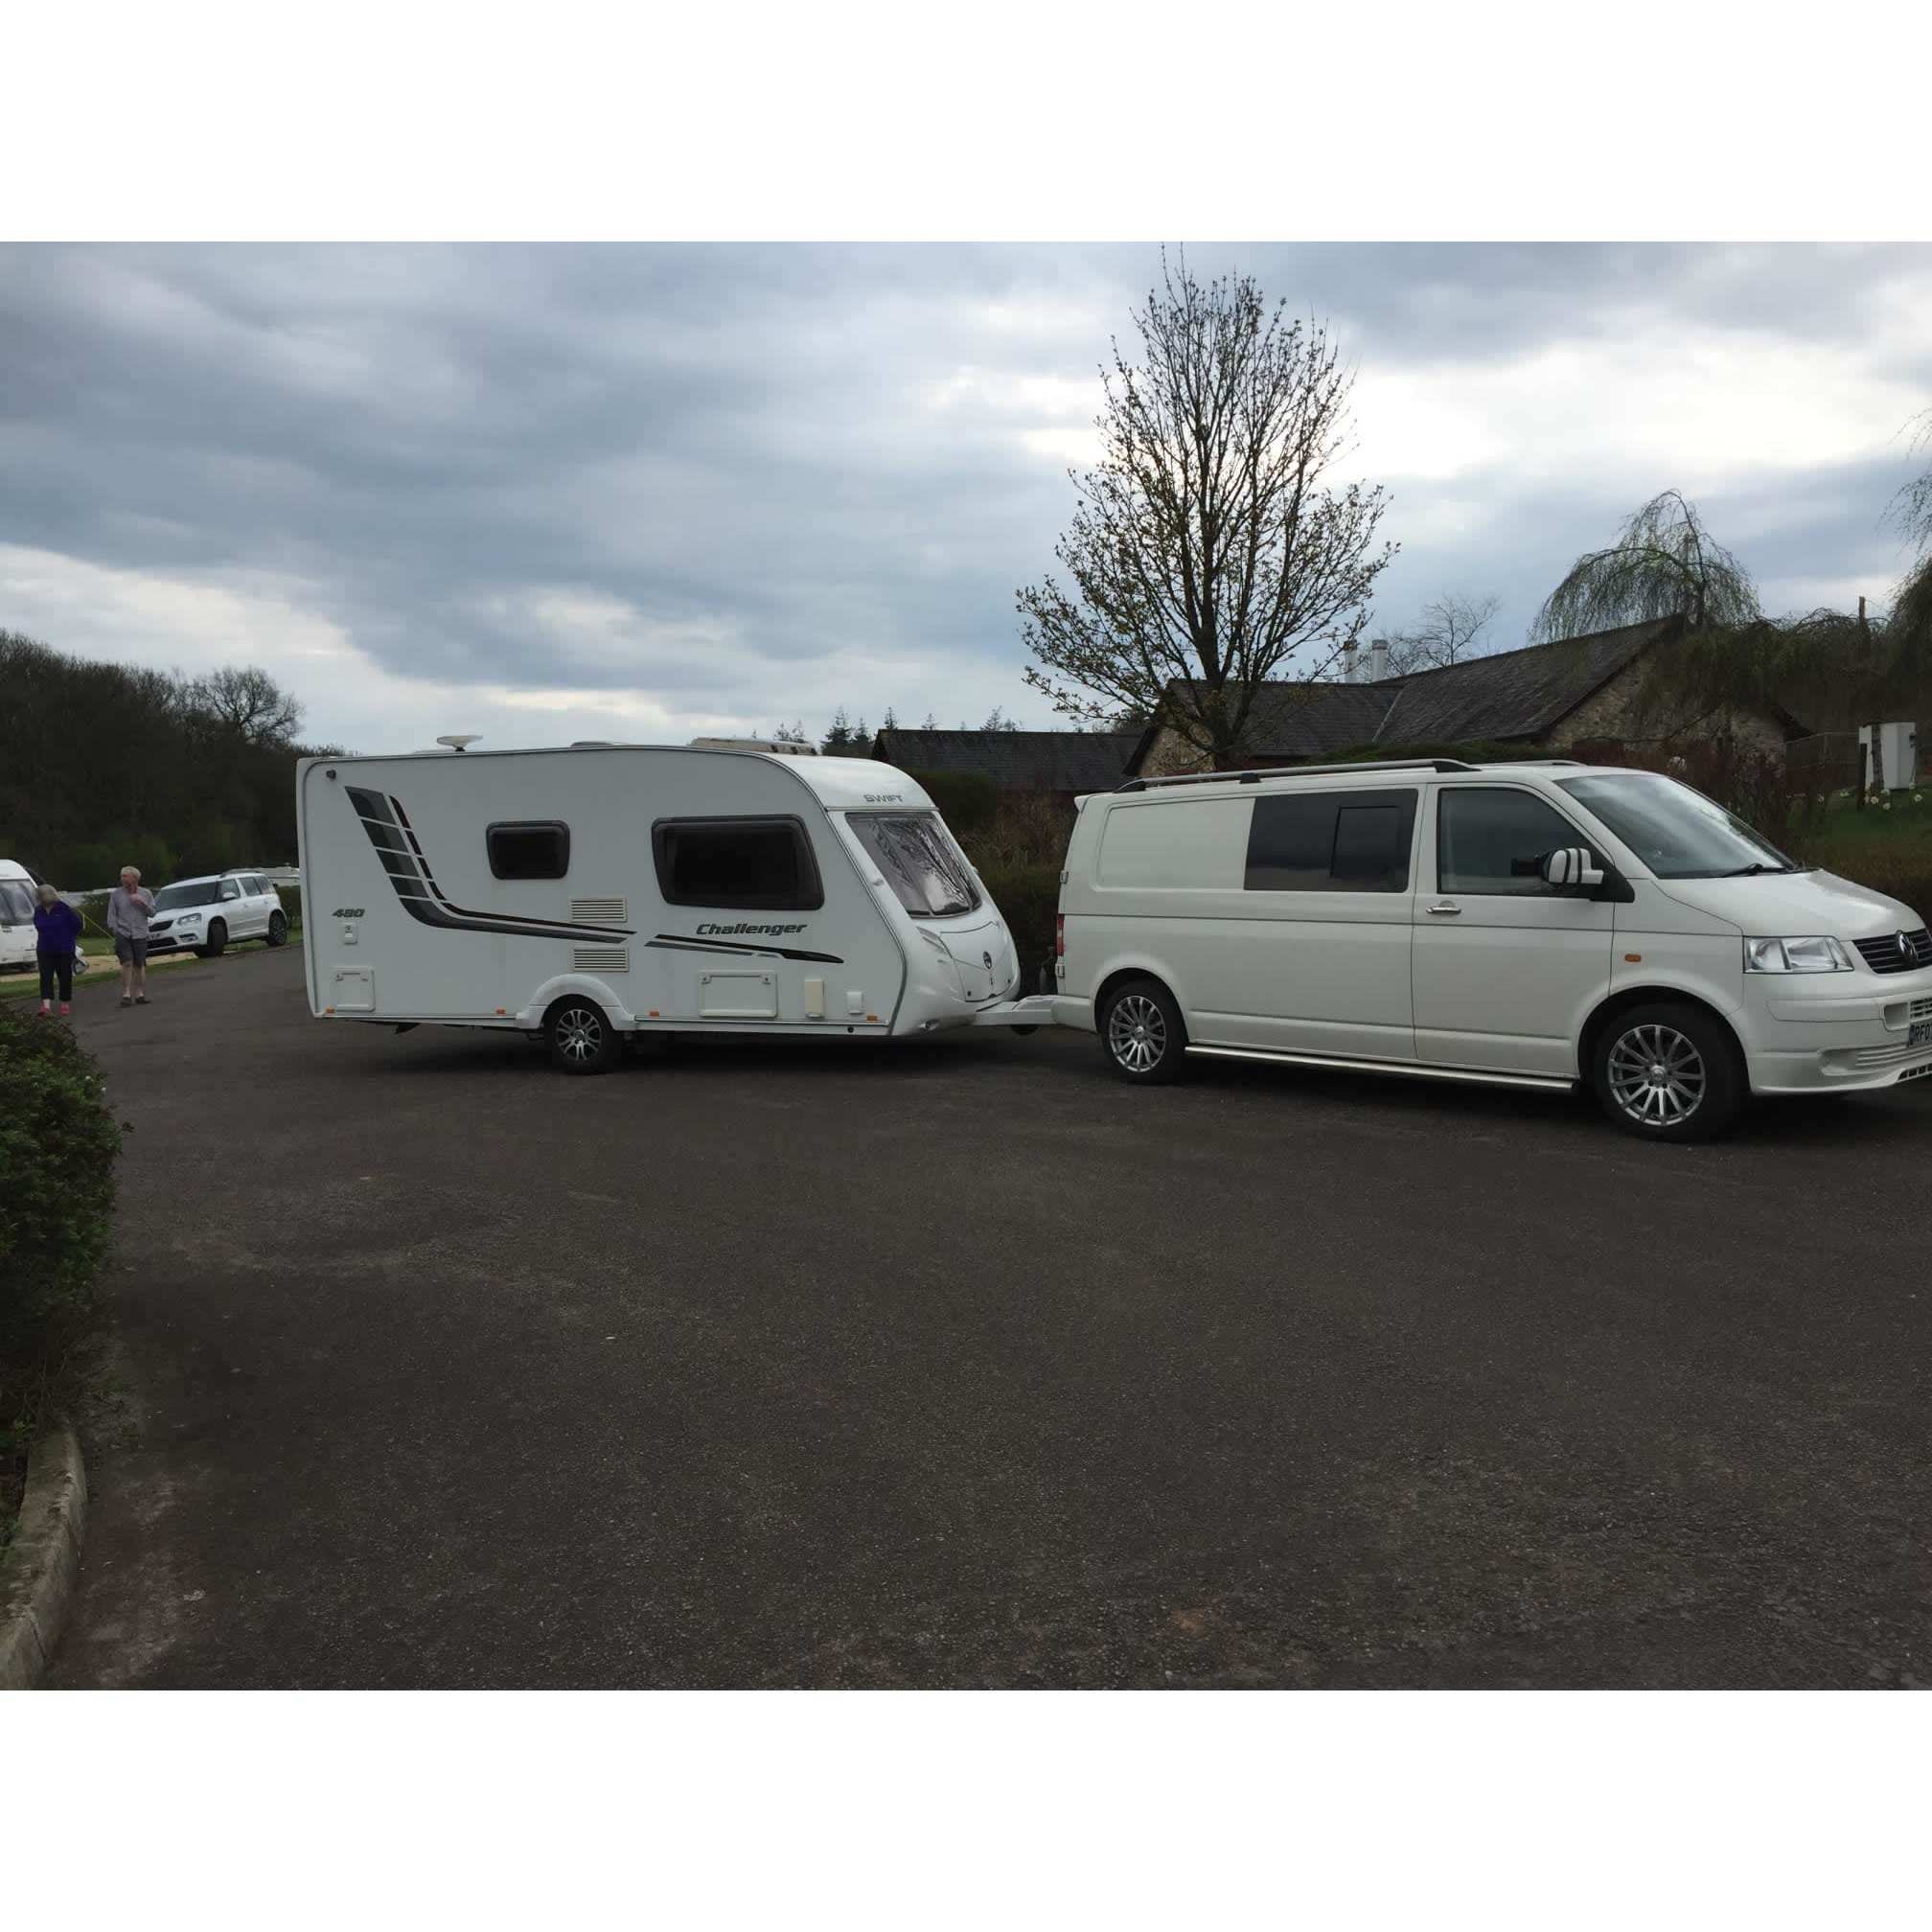 Max Caravan Towing Services UK - Glastonbury, Somerset BA6 8FD - 07397 803448 | ShowMeLocal.com